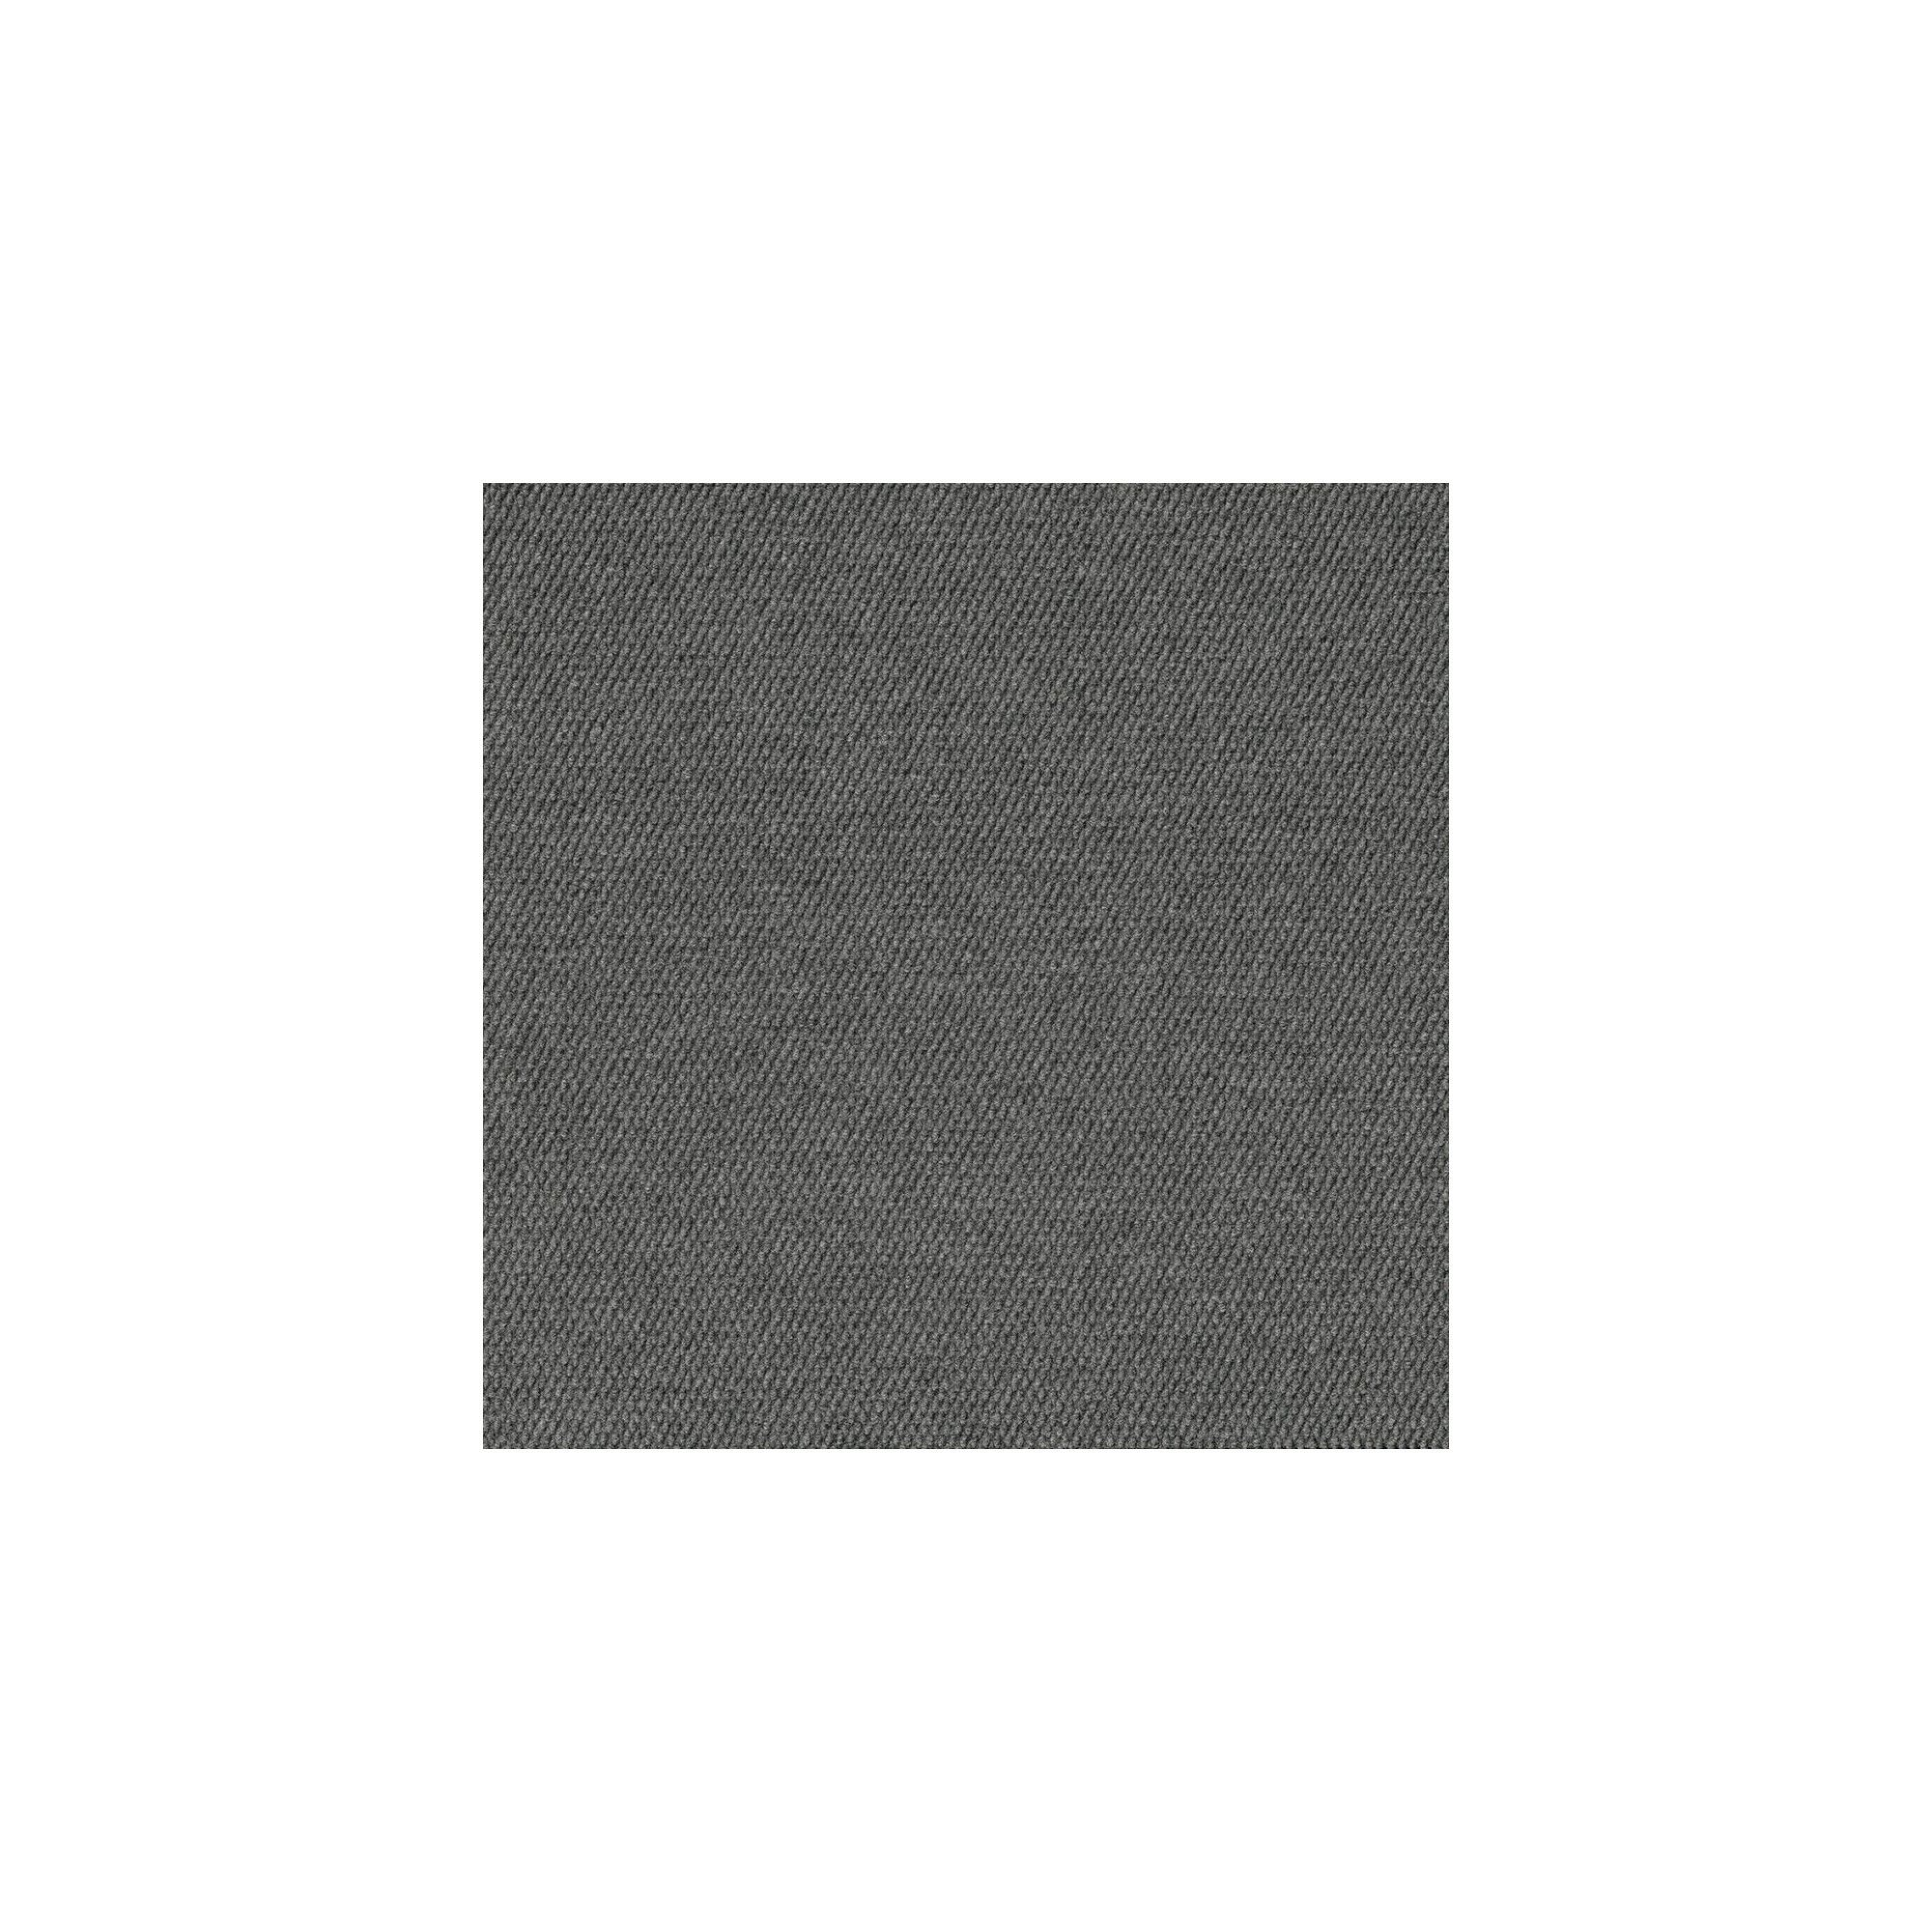 24 15pk Hobnail Carpet Tiles Gray Foss Floors In 2019 Products Carpet Tiles Tiles Carpet